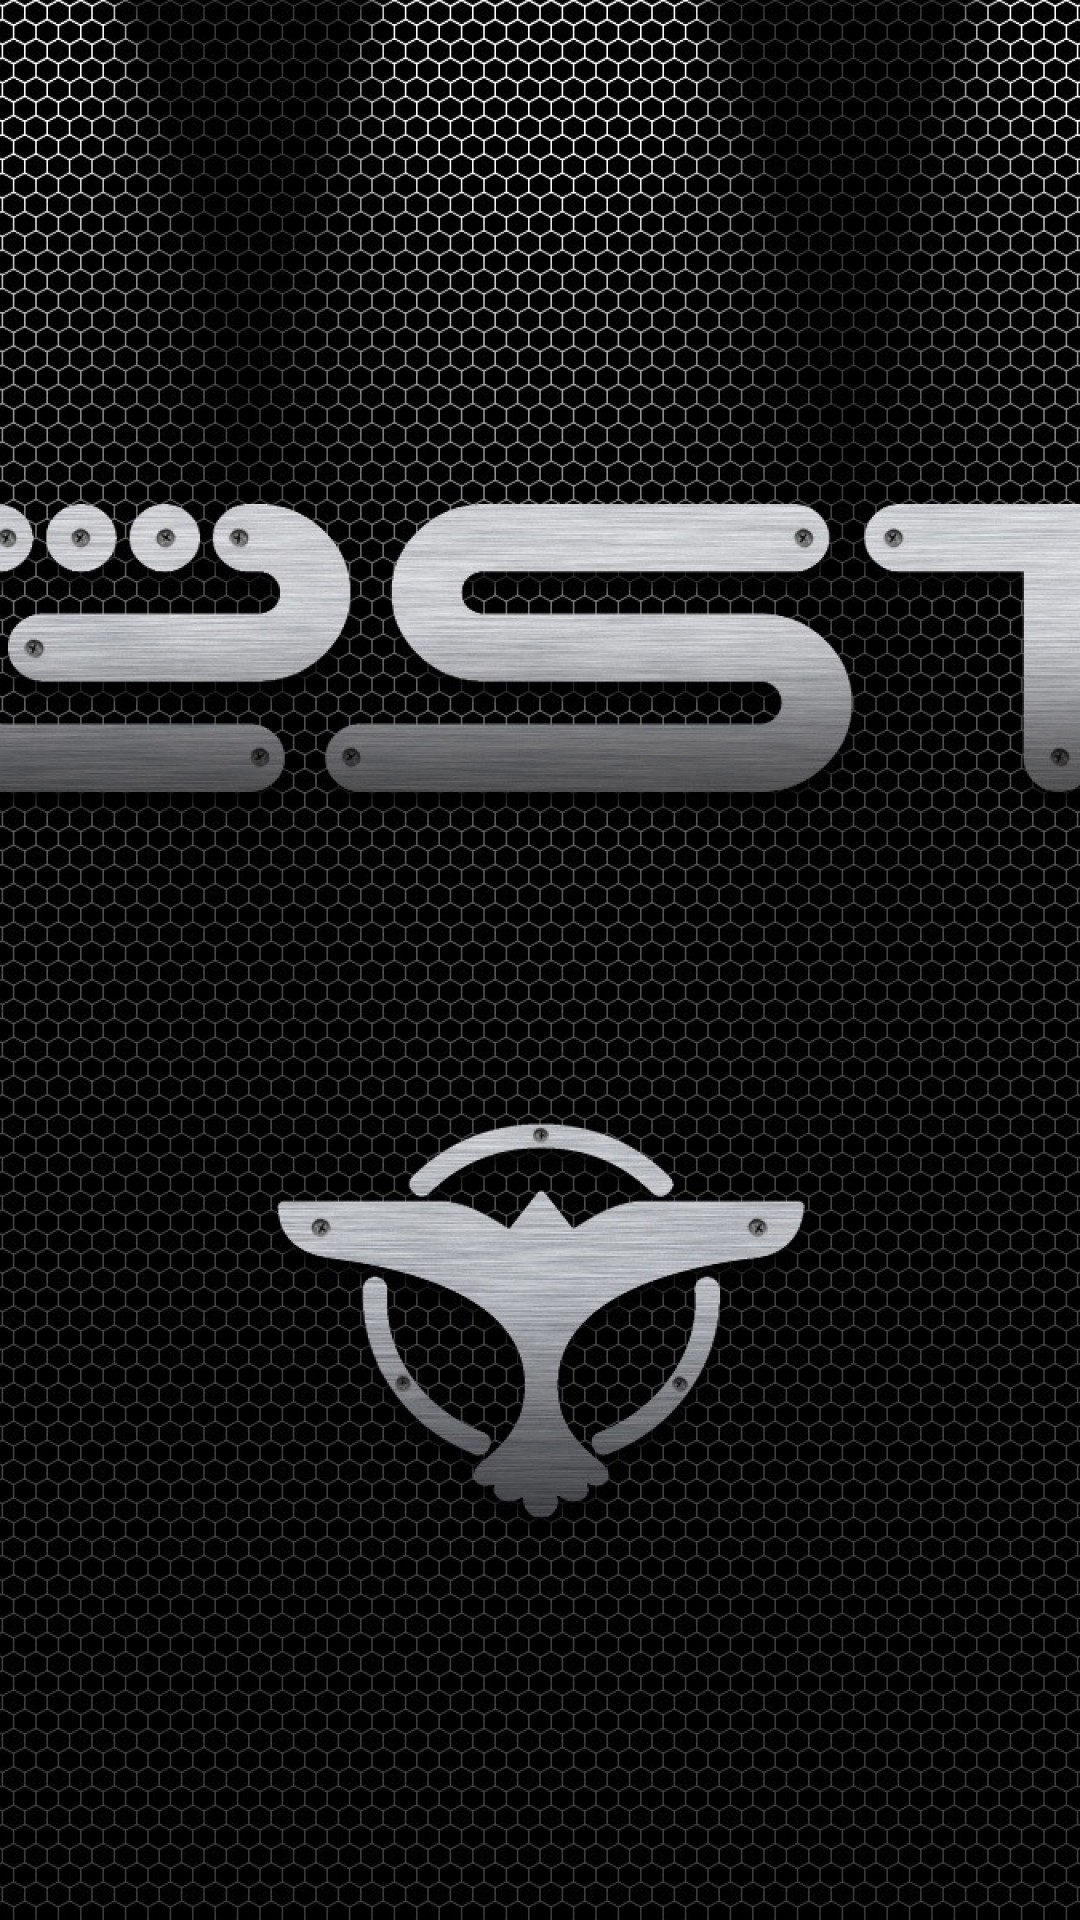 Wallpaper dj tiesto, logo, letters, bird, background